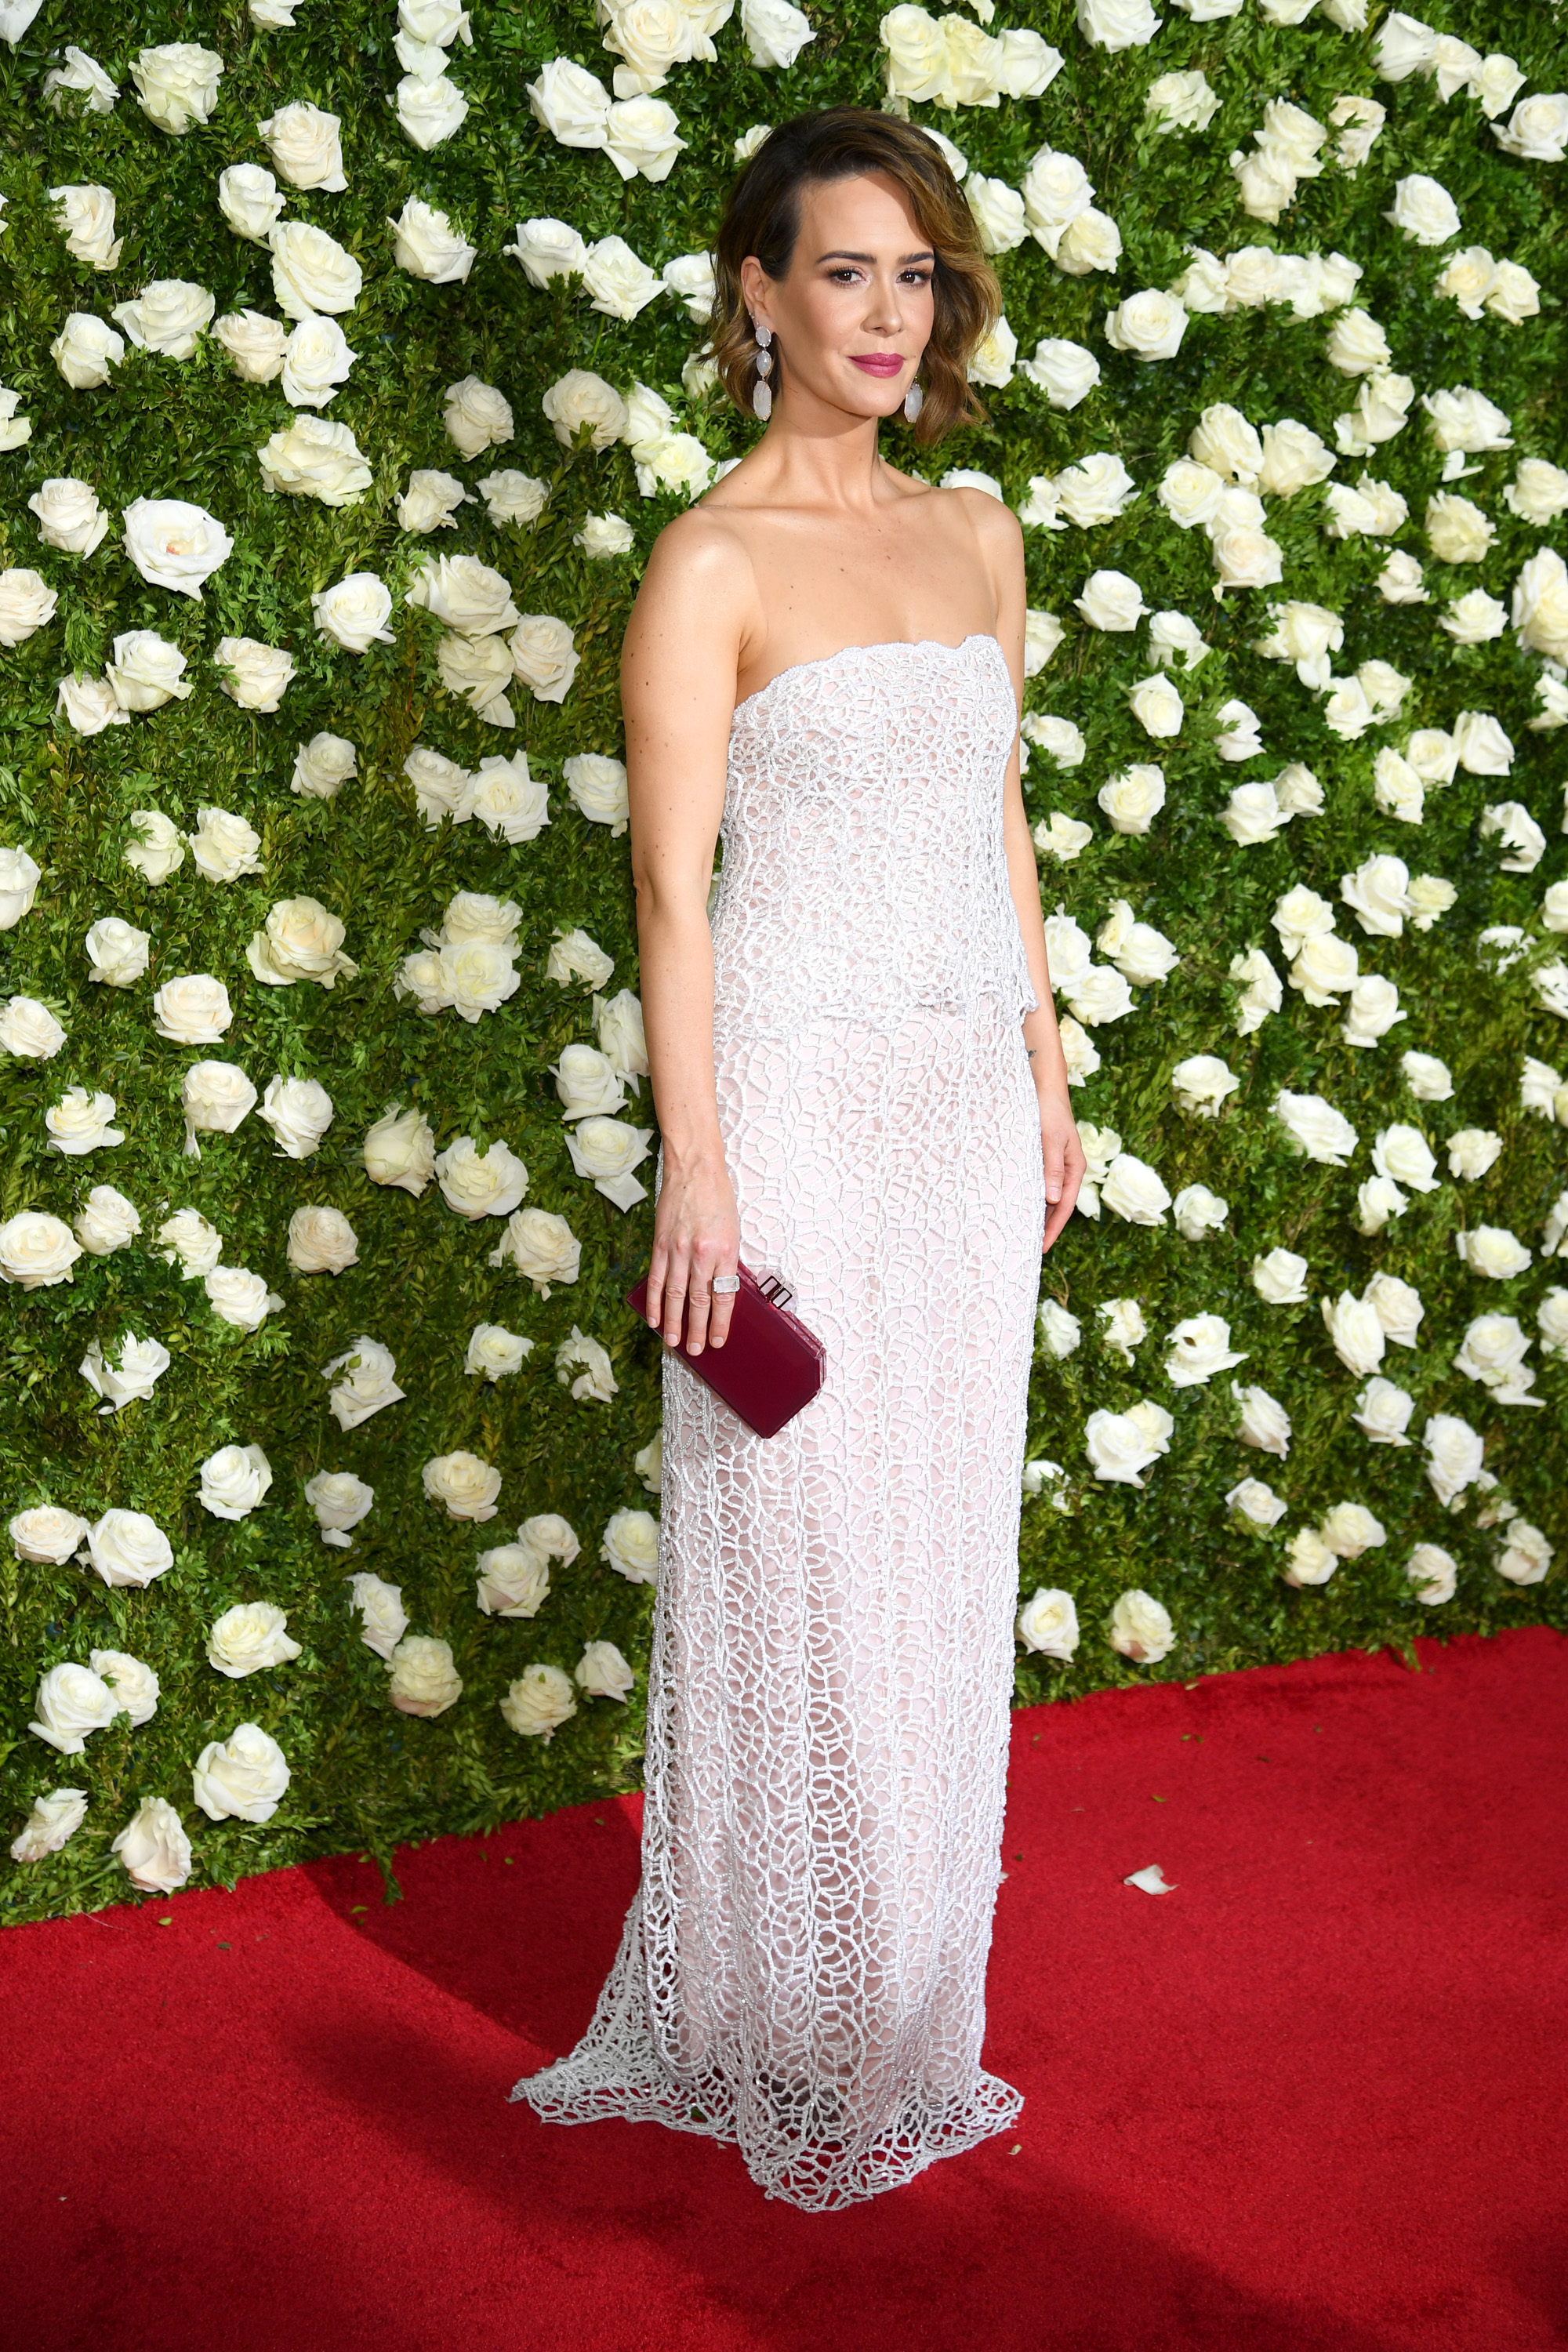 NEW YORK, NY - JUNE 11:  Sarah Paulson attends the 2017 Tony Awards at Radio City Music Hall on June 11, 2017 in New York City.  (Photo by Dimitrios Kambouris/Getty Images for Tony Awards Productions)